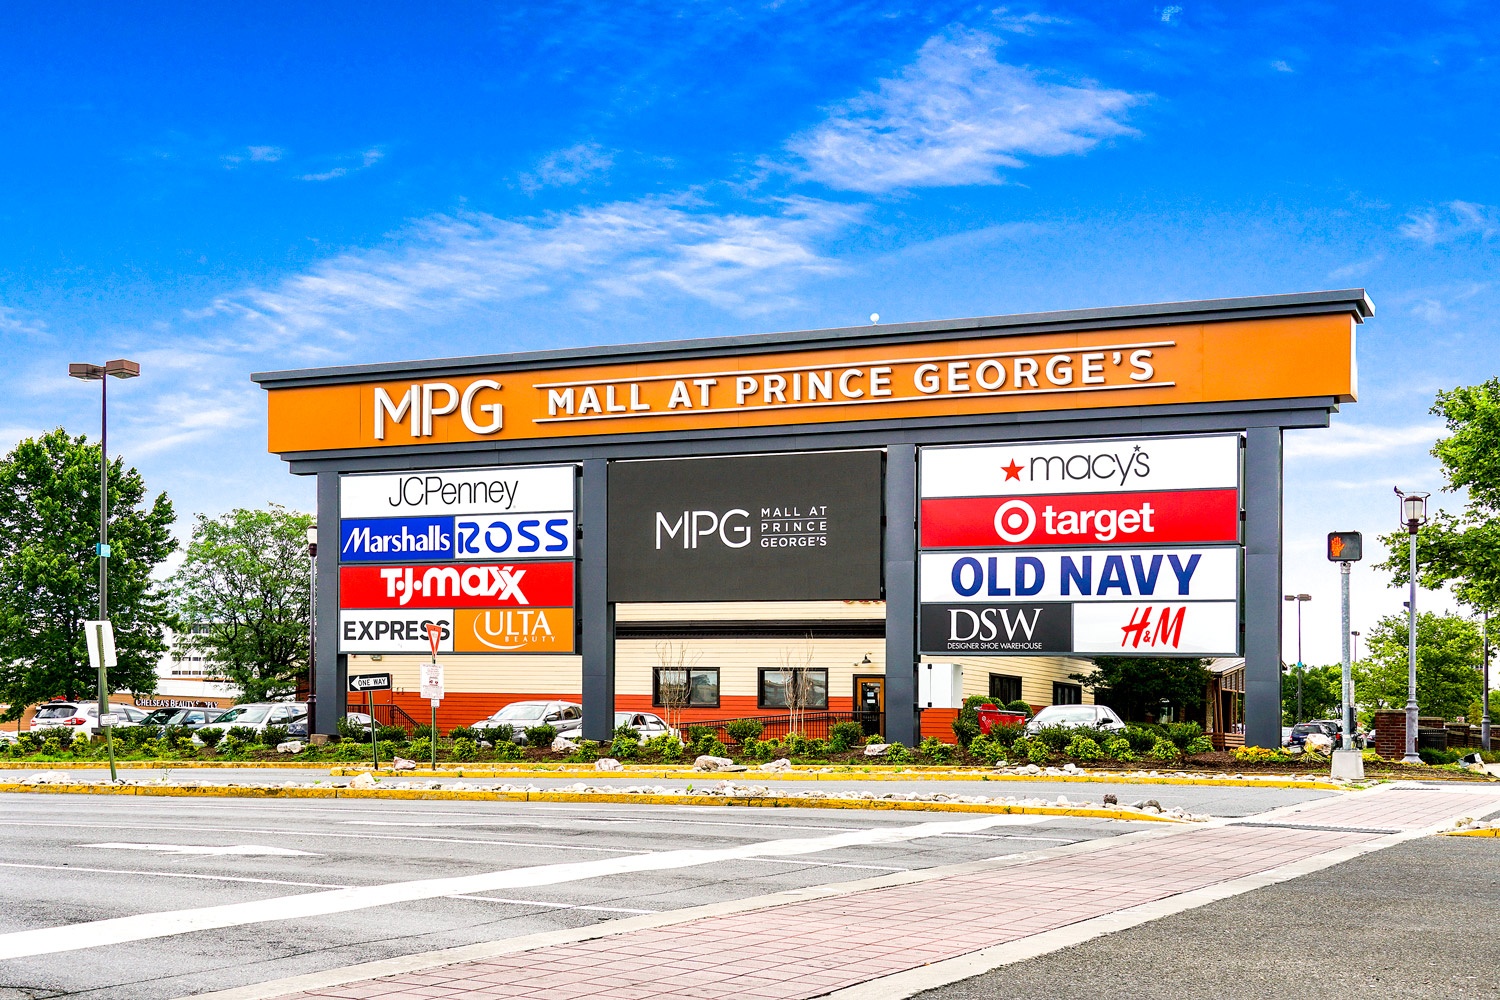 10 Minutes to The Mall at Prince George's in Hyattsville, MD